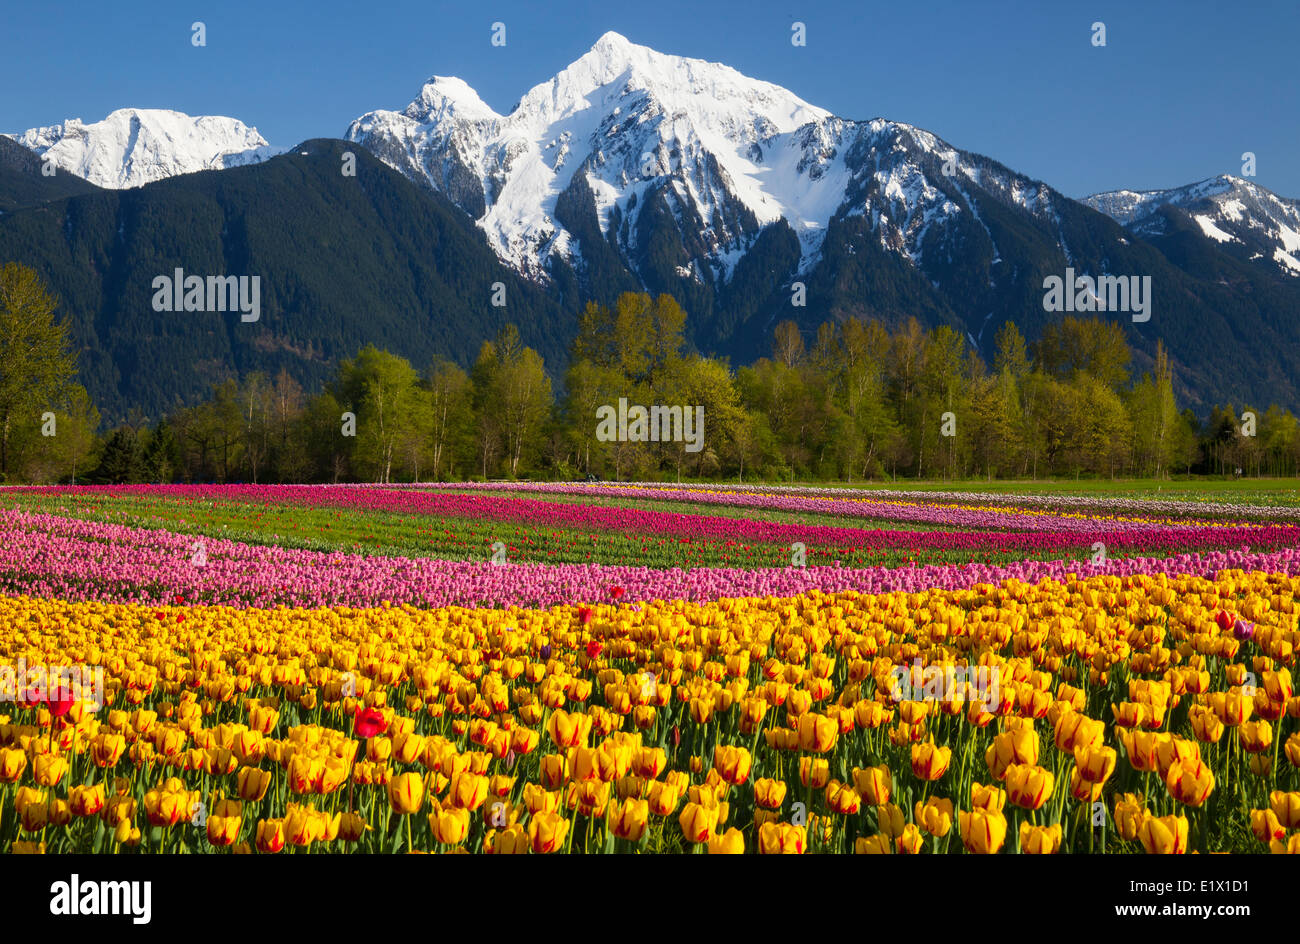 Tulip fields in bloom, Fraser Valley, BC, Mt Cheam behind Stock Photo